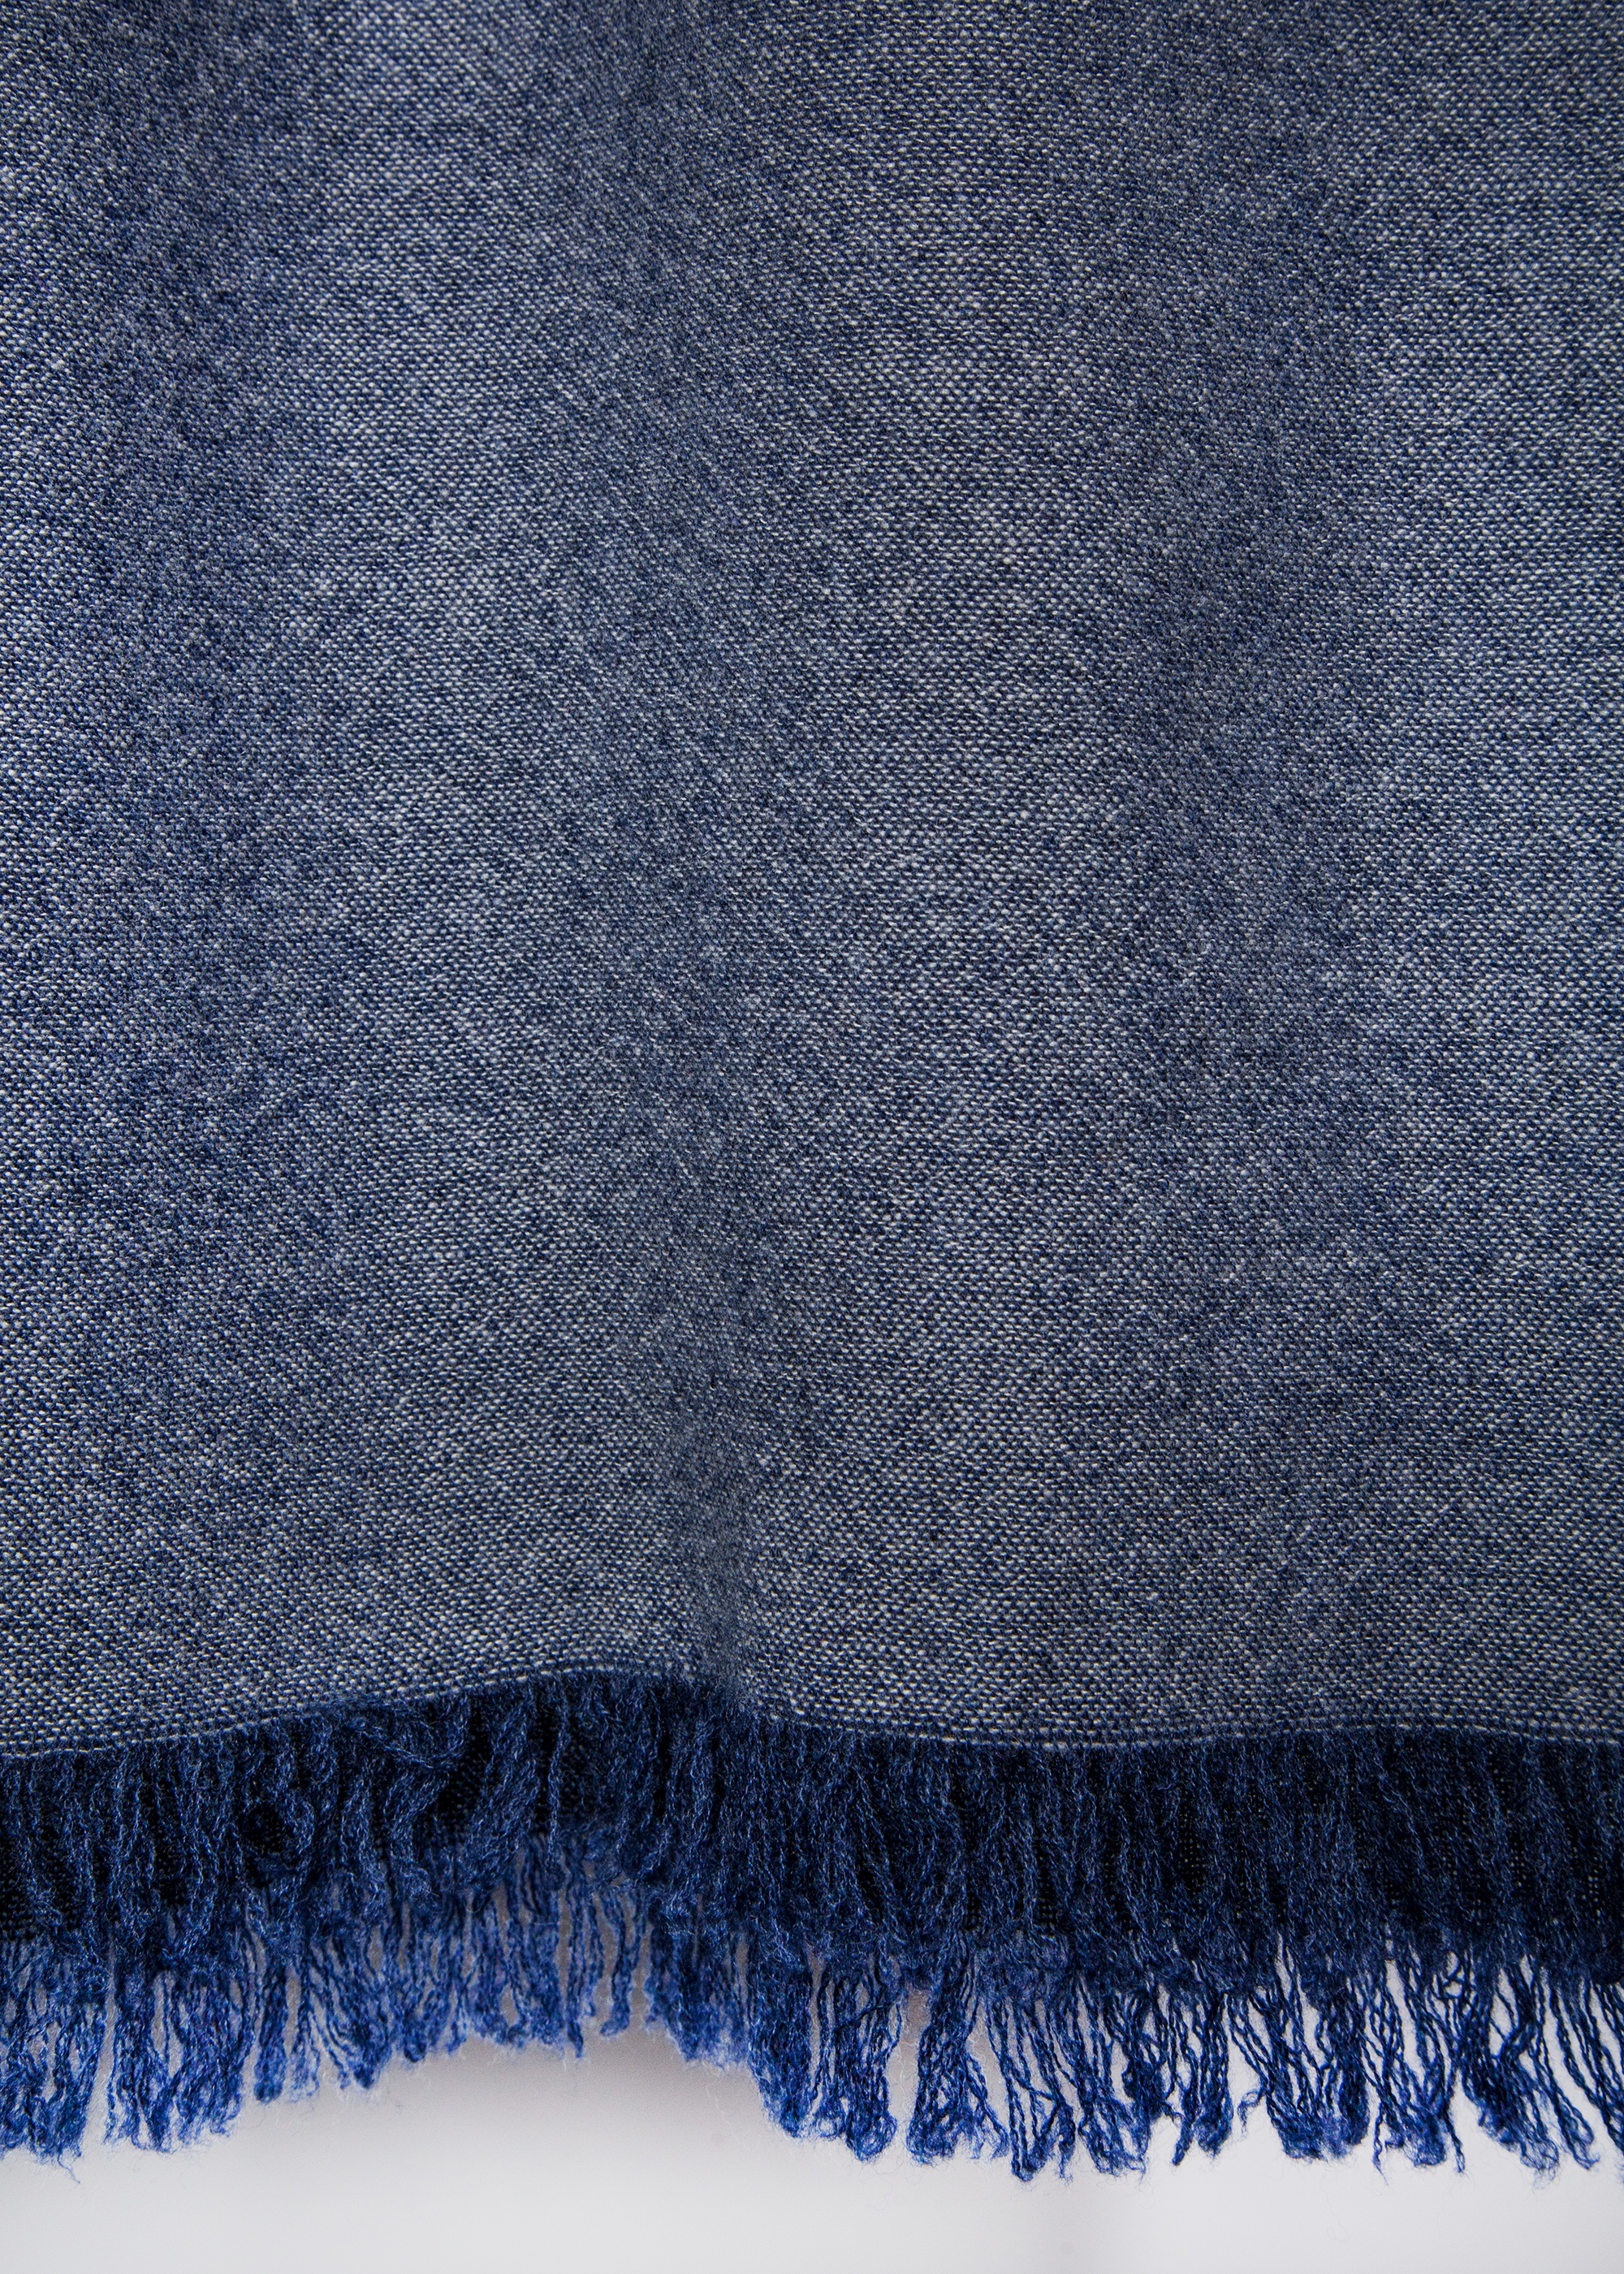 scarf-begg-and-co-blue-ombre-2.jpg